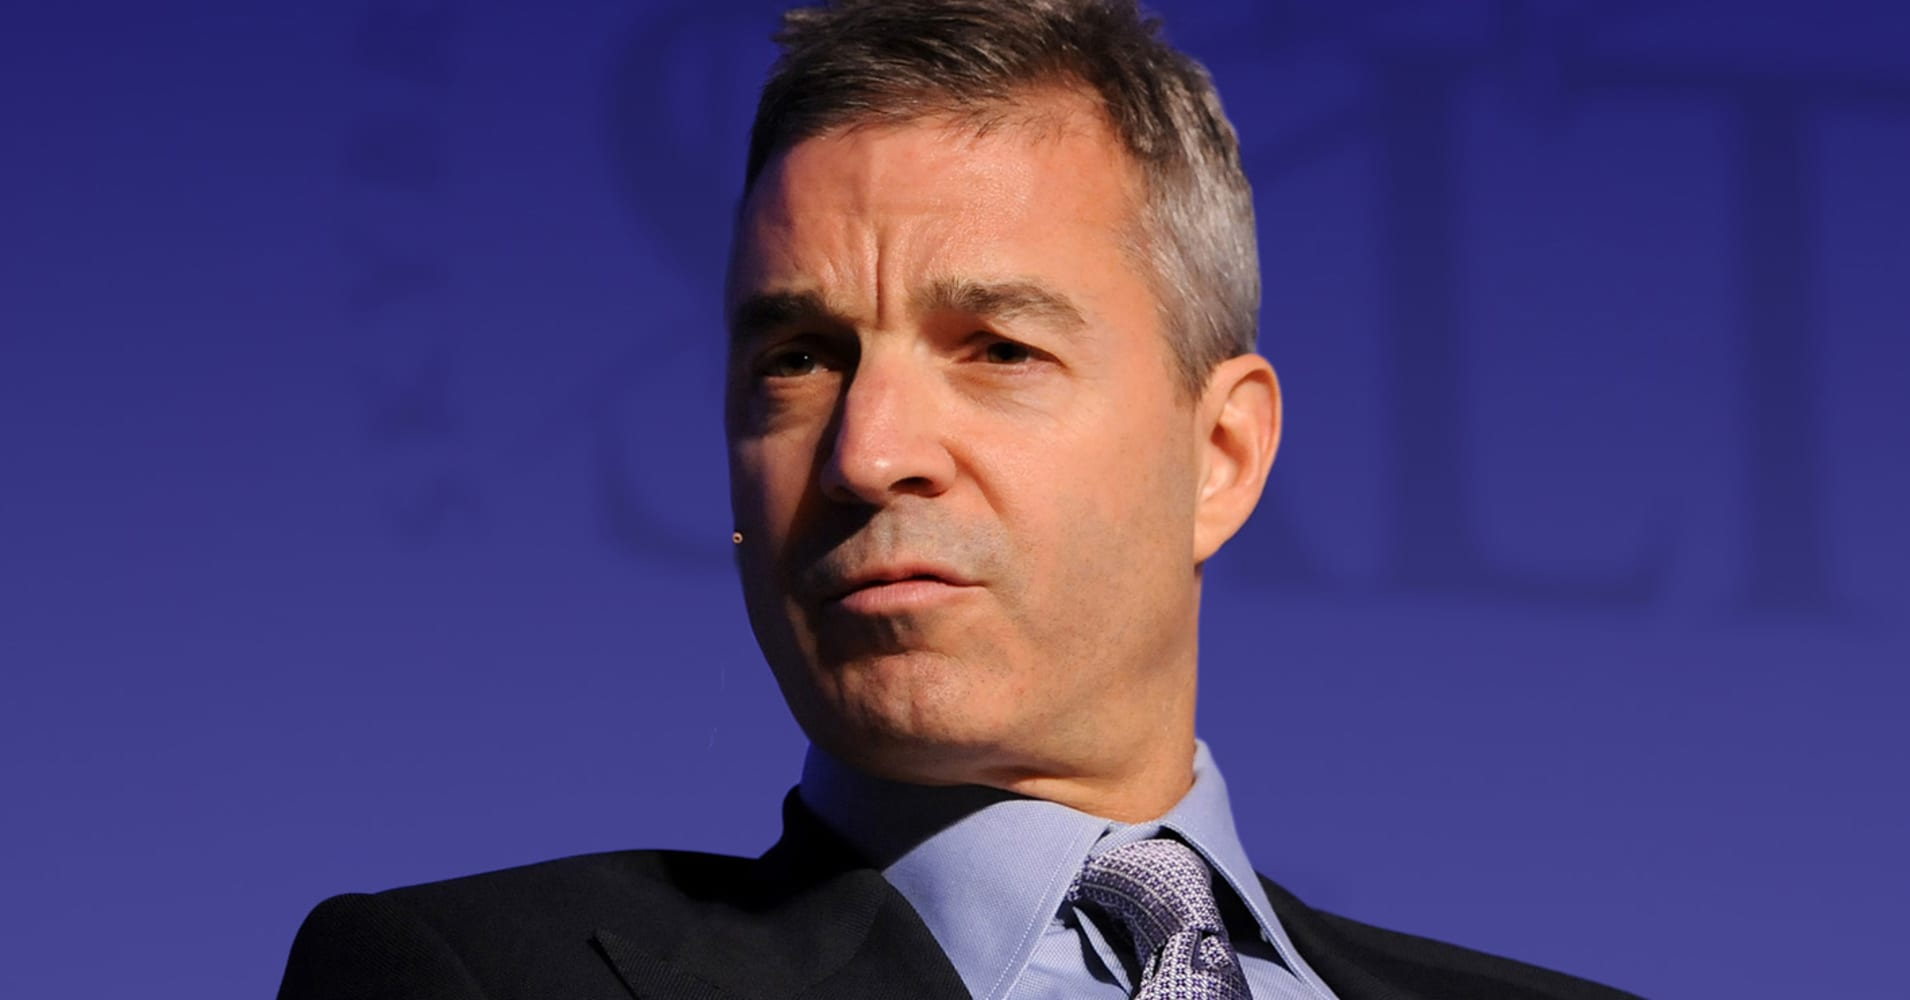 Daniel Loeb's Third Point Unveils New Position in PayPal, Says it Could Be Next Netflix, Amazon